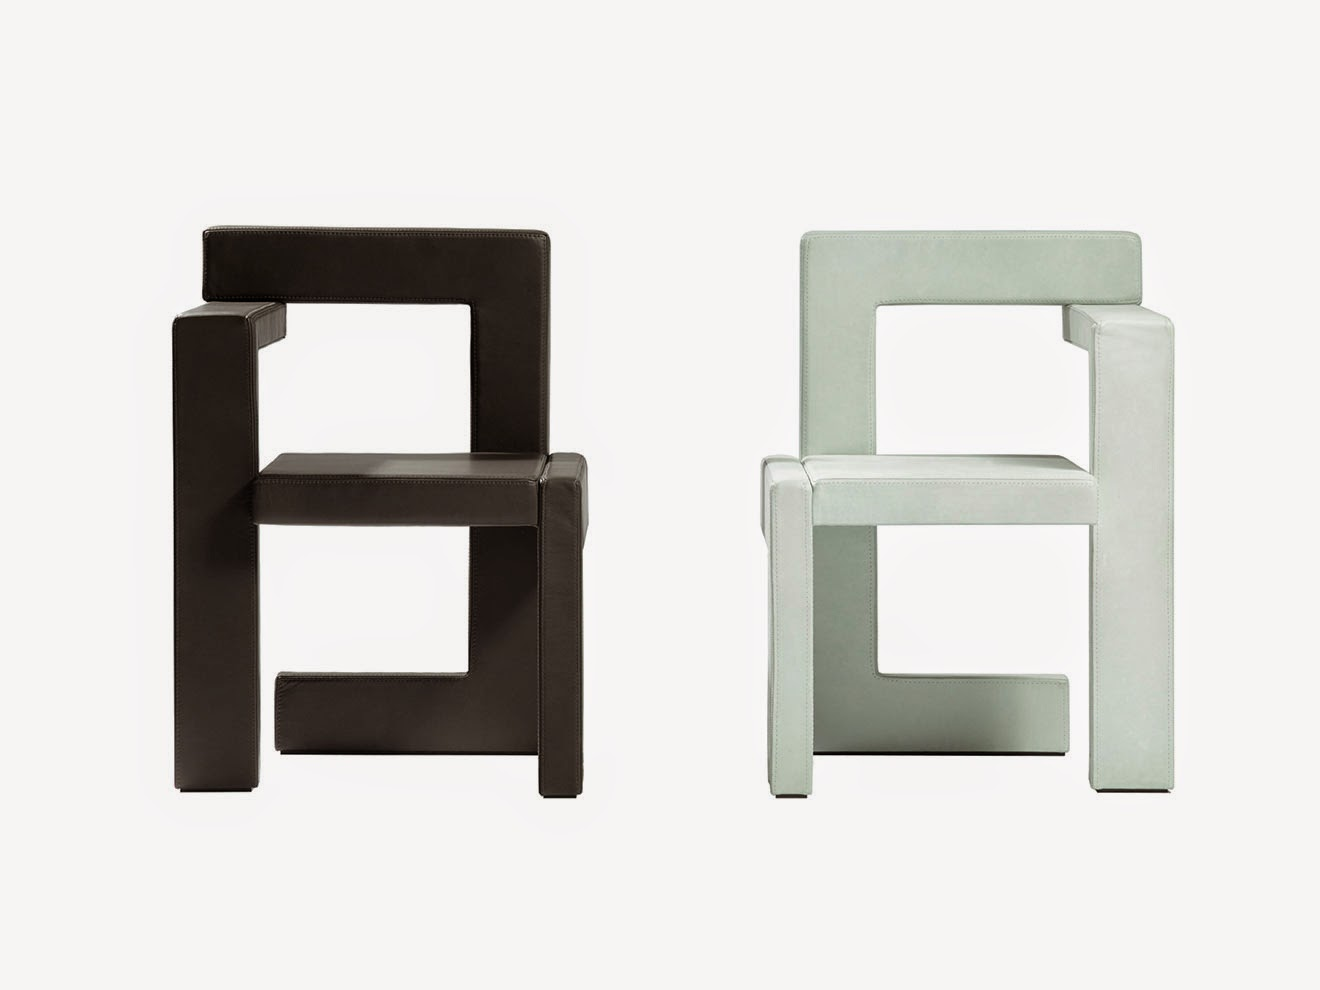 Gerrit rietveld chair - New Steltman Chairs Available